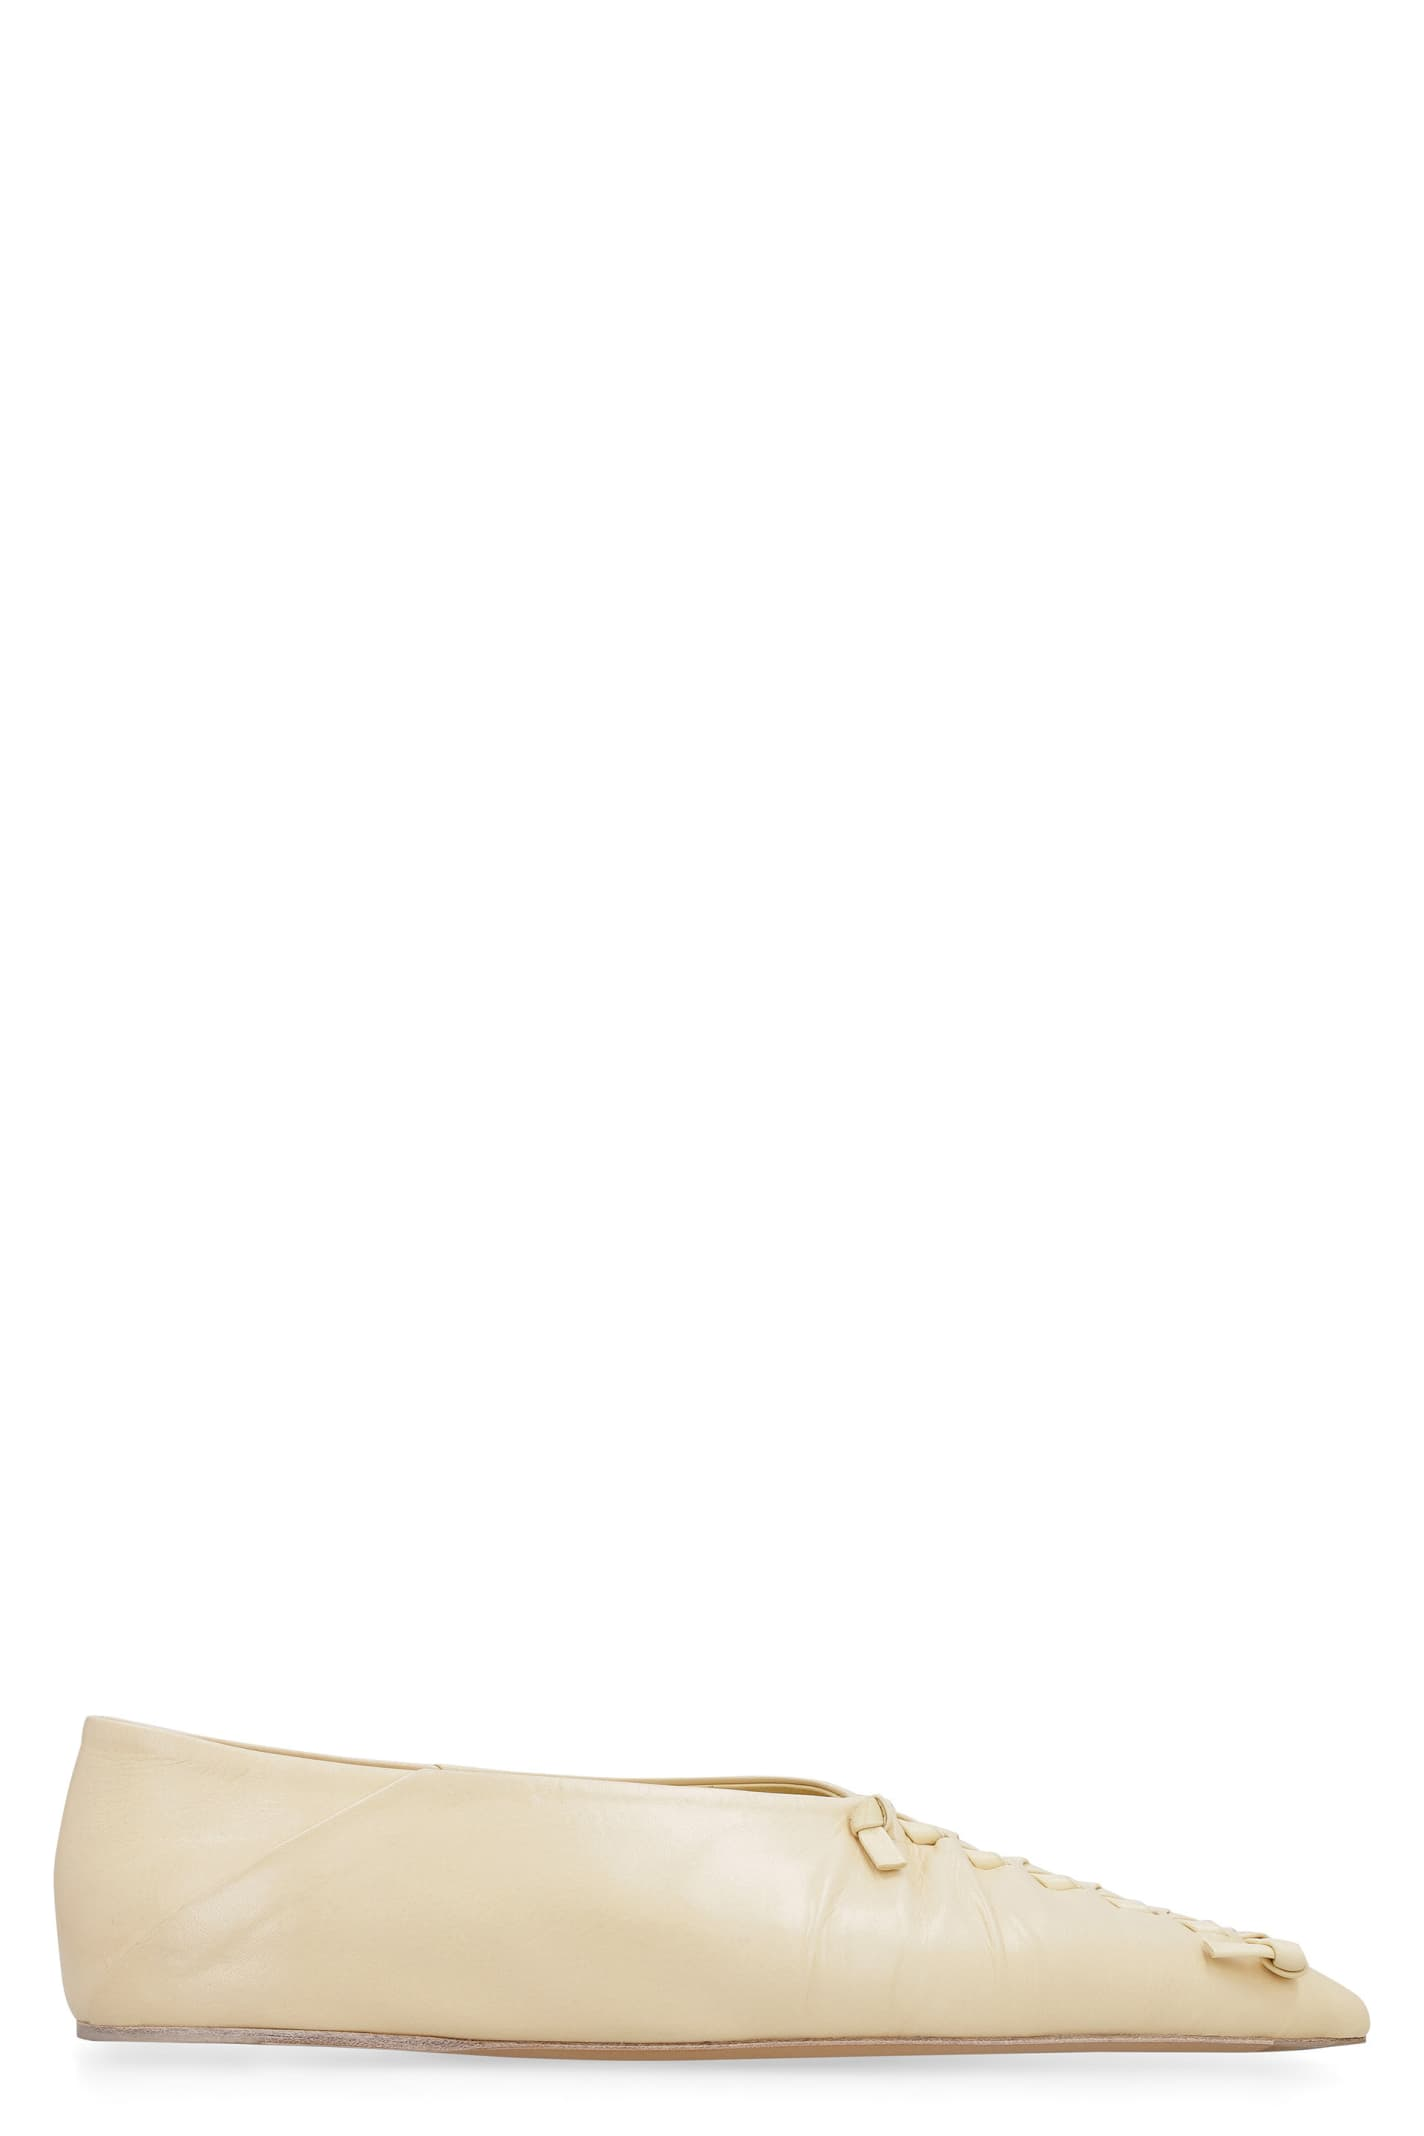 Buy Jil Sander Leather Pointy-toe Ballet Flats online, shop Jil Sander shoes with free shipping